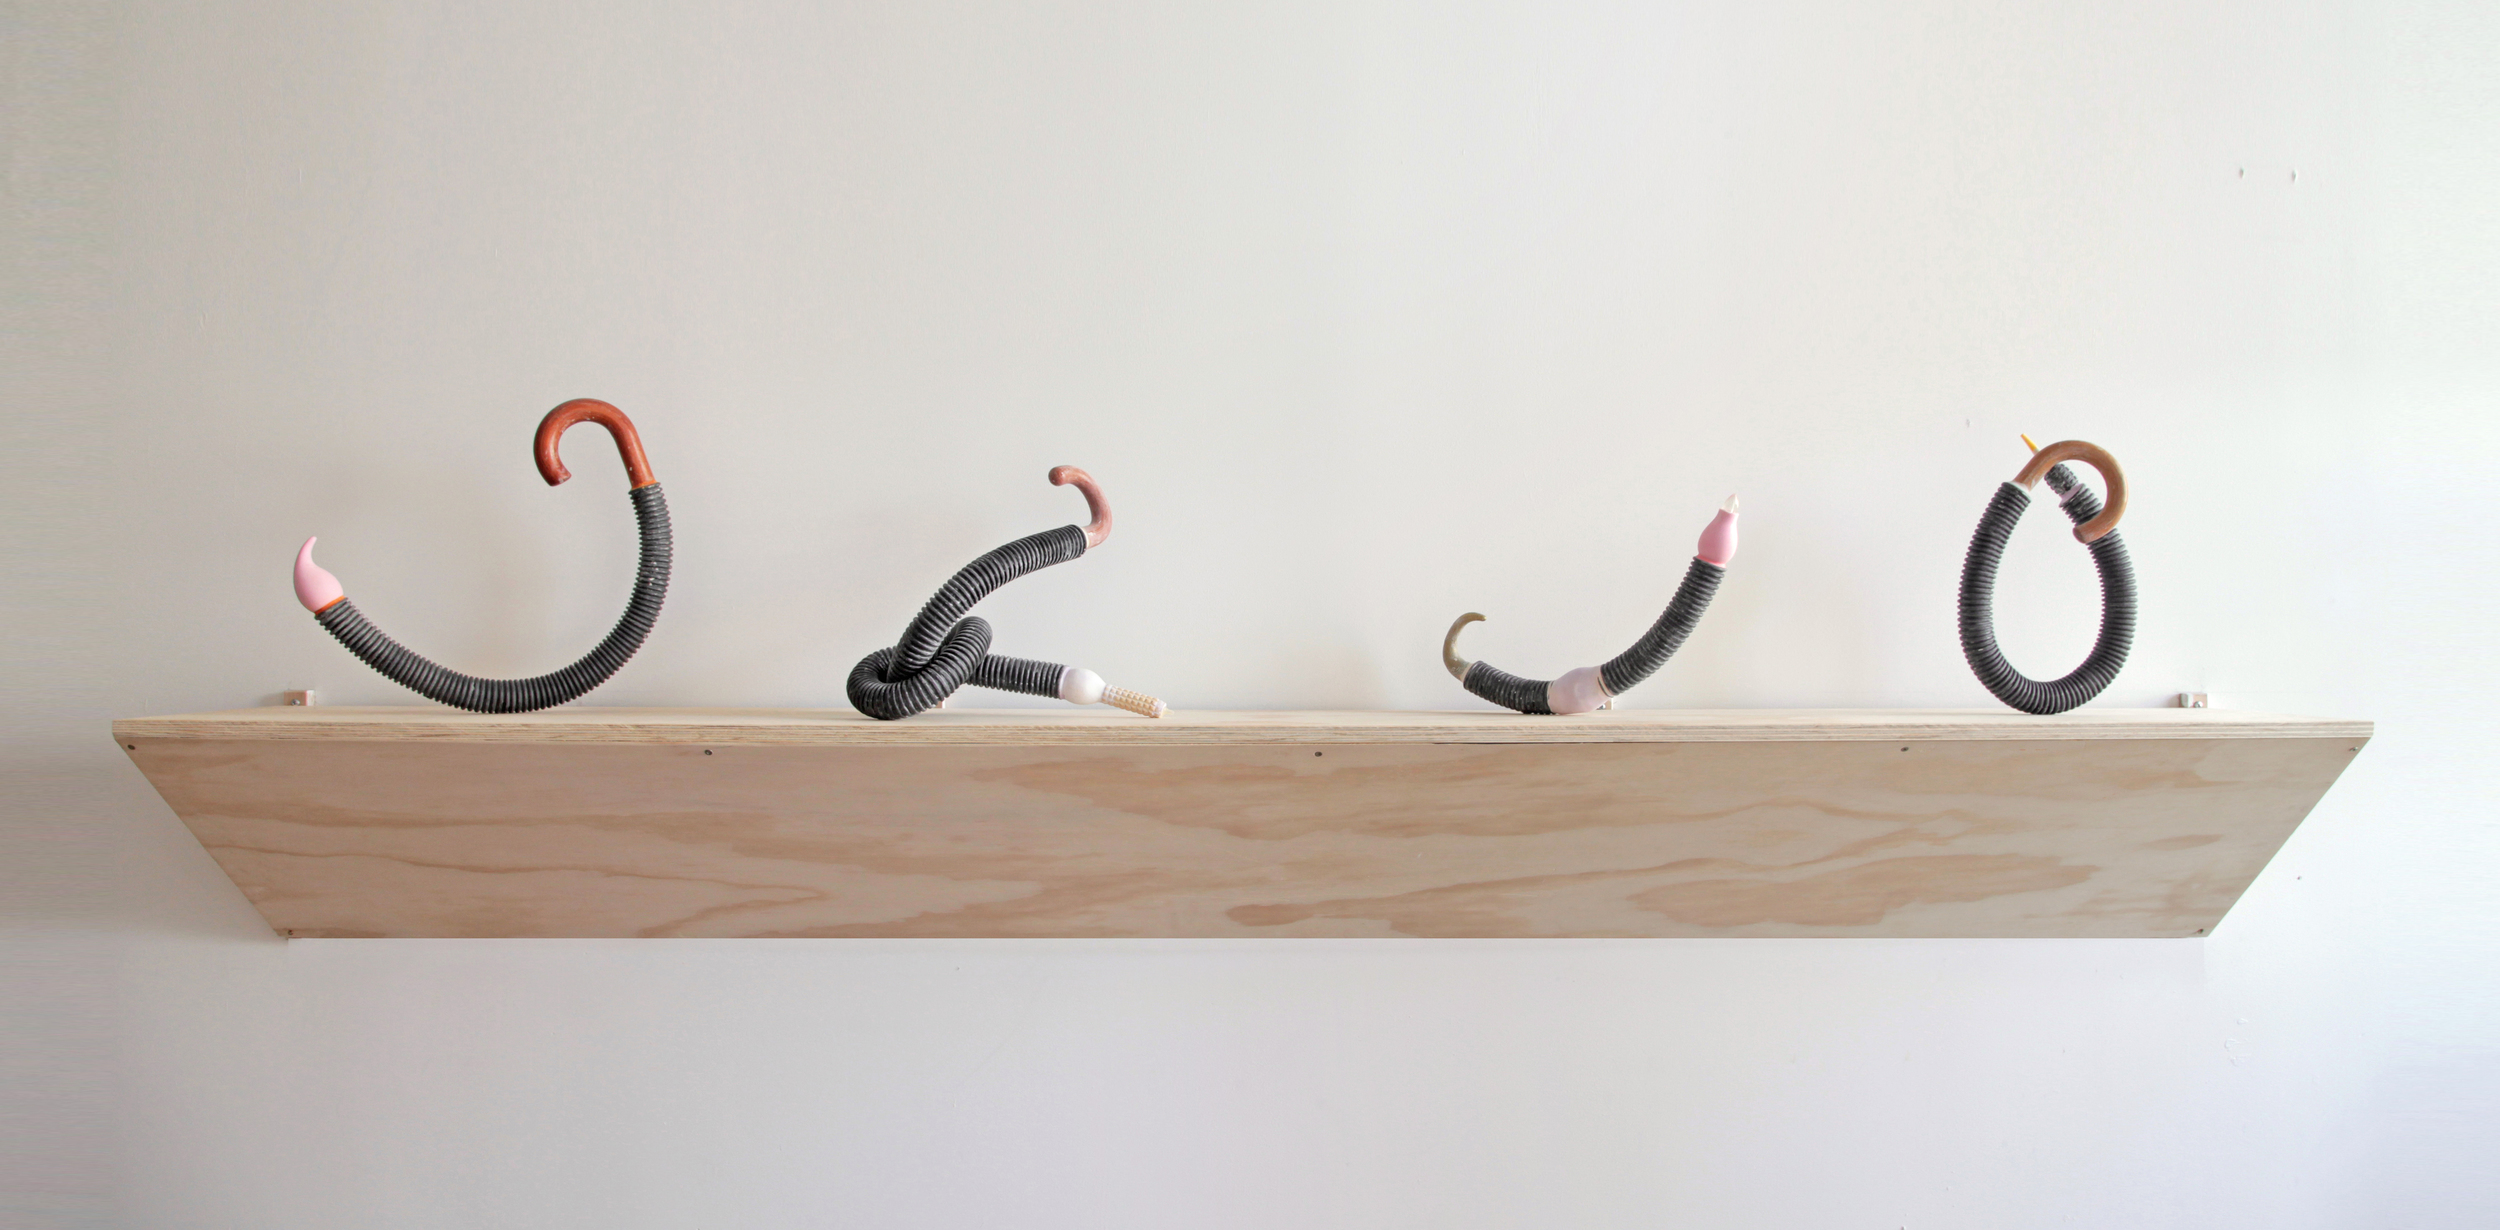 The Ends of Things (installation view), 2014 umbrella handles, hose, plaster, pigment, found objects 16 x 96 x 12 in